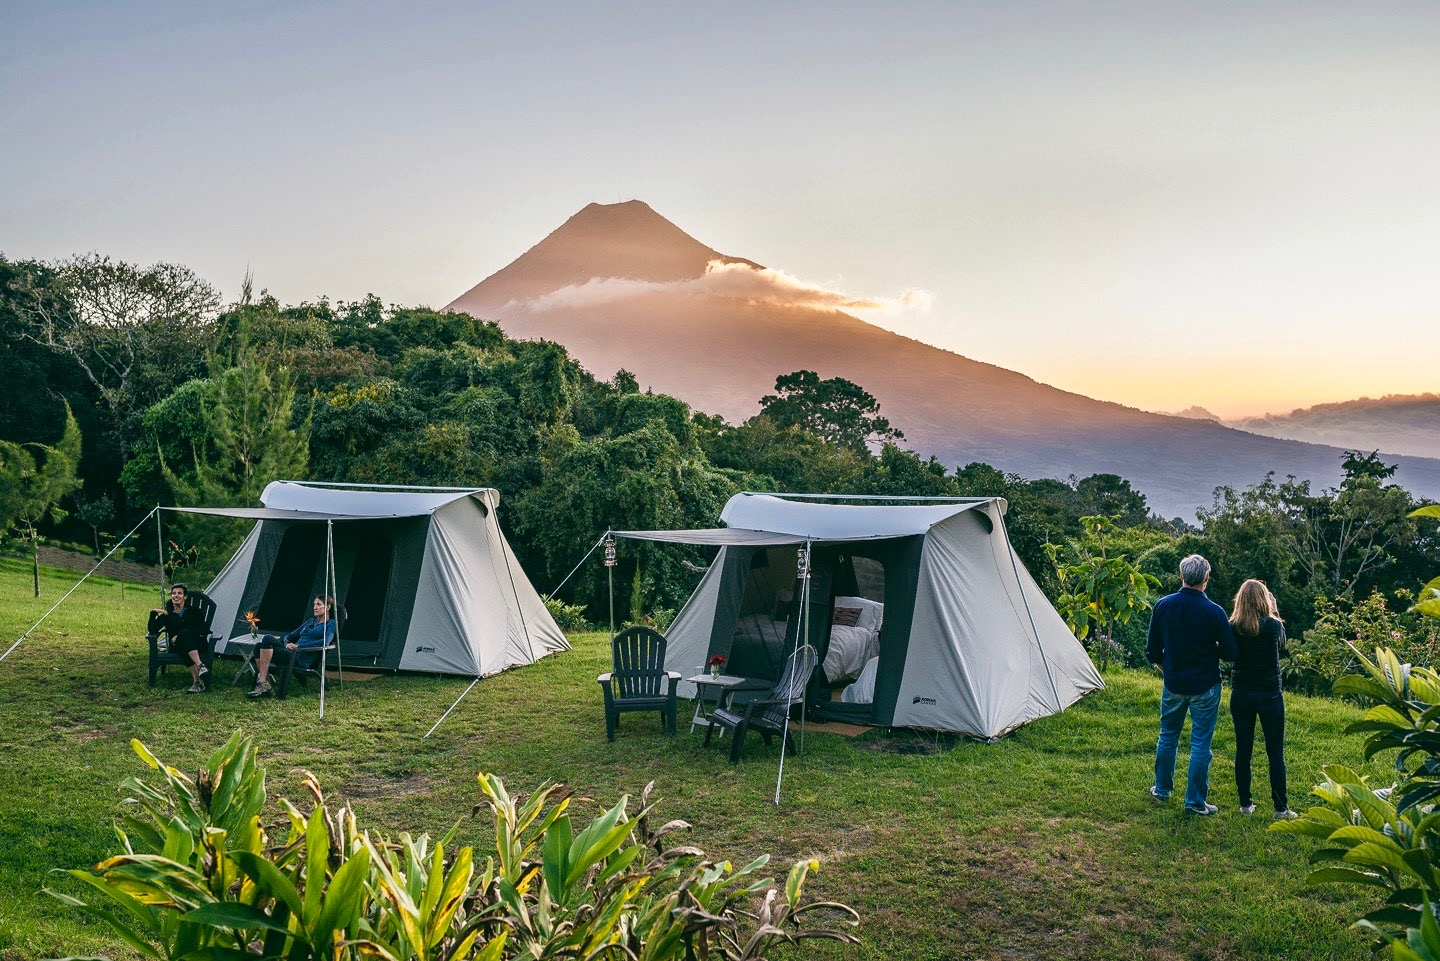 Guatemala - 4 day + 9 day trips Feb - June + Oct - DecIncludes all in-country transportation, lodging, trekking, tours and most meals .